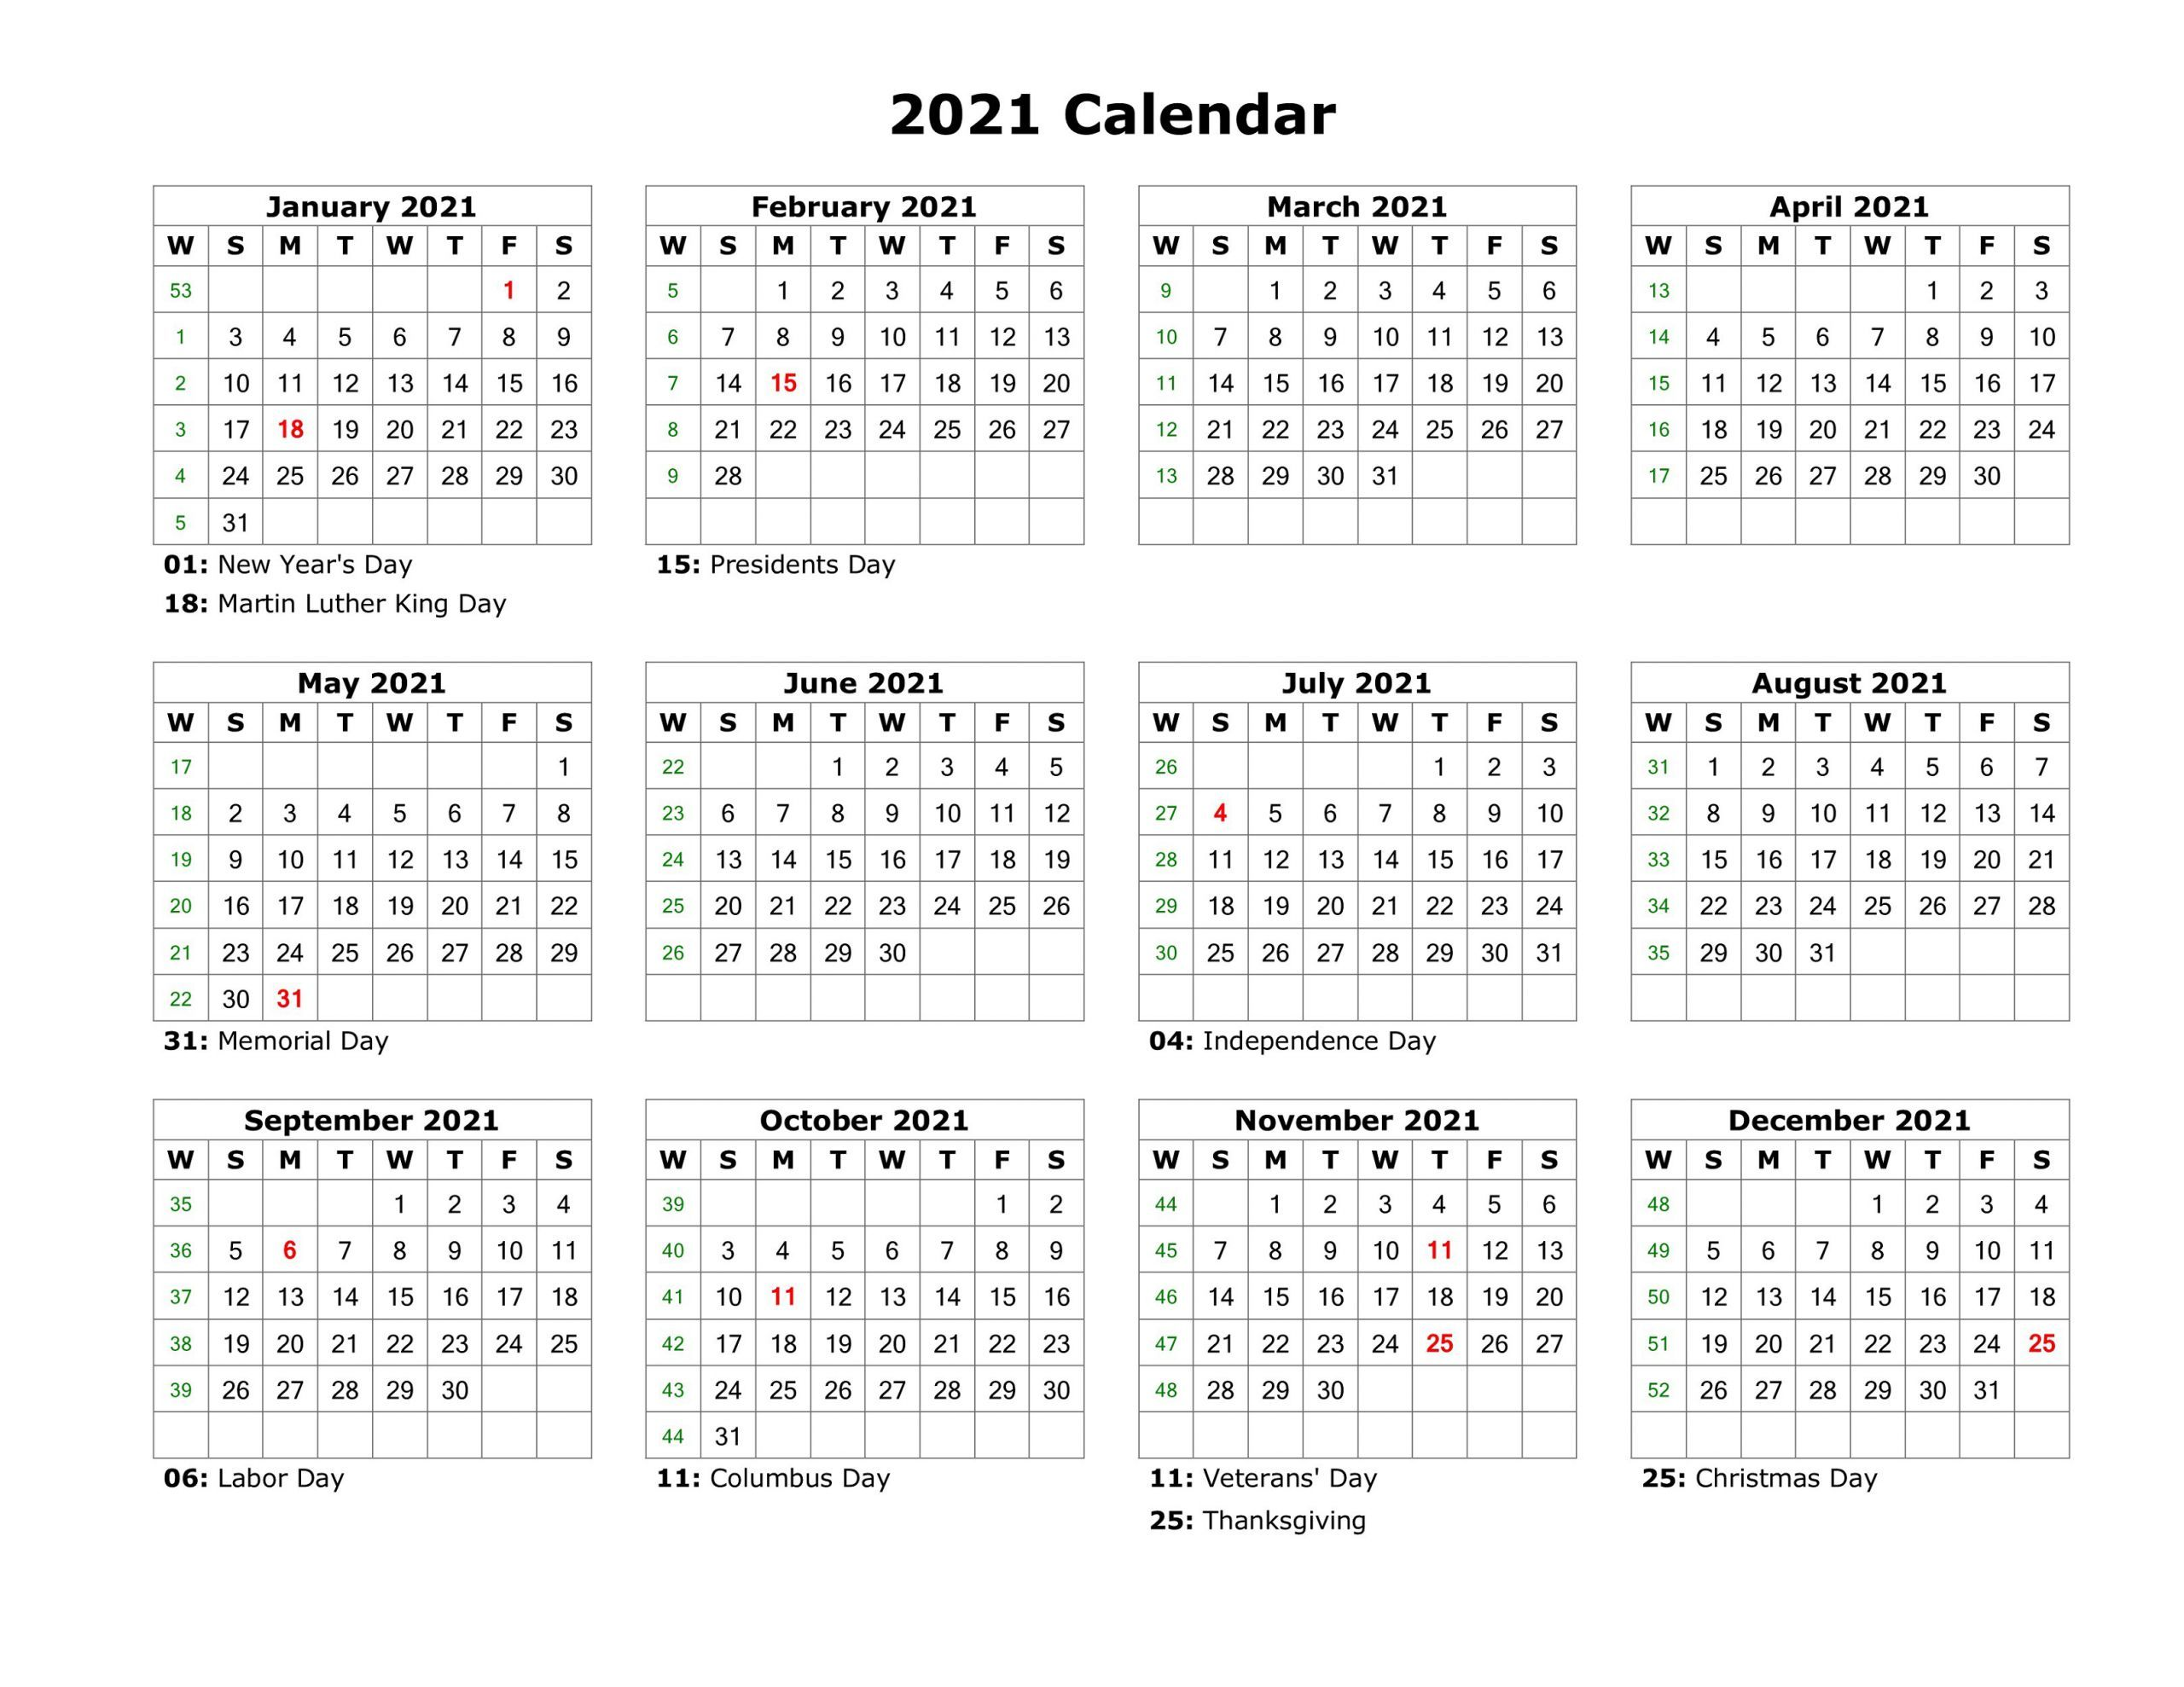 year at a glance calendar 2021 printable free for year at a glance calendar 2021 printabl in 2020 calendar template printable calendar template calendar 2019 printable a glance calendar 2021 printable free